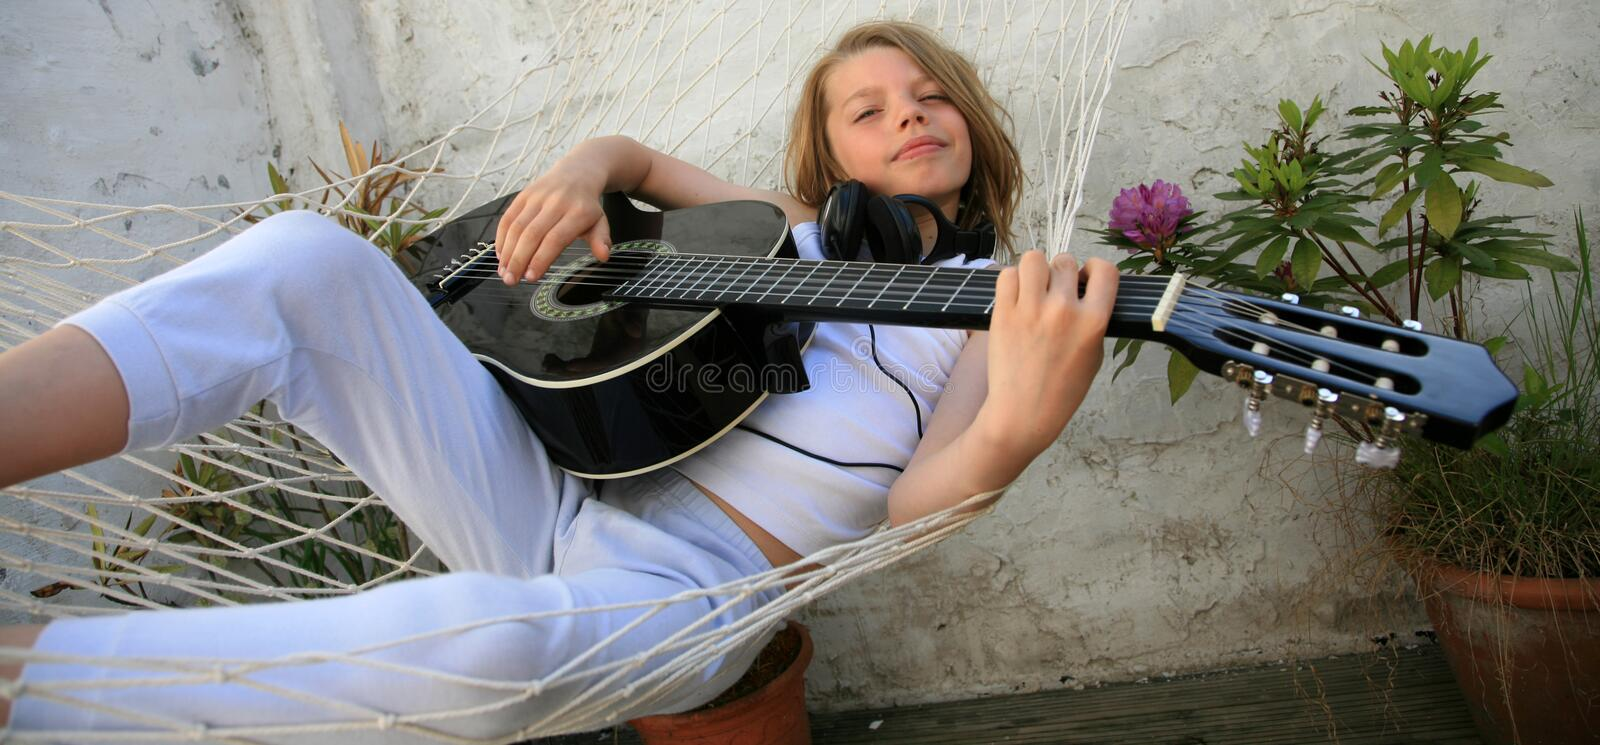 Download Boy and guitar stock image. Image of listen, hammock - 16392199